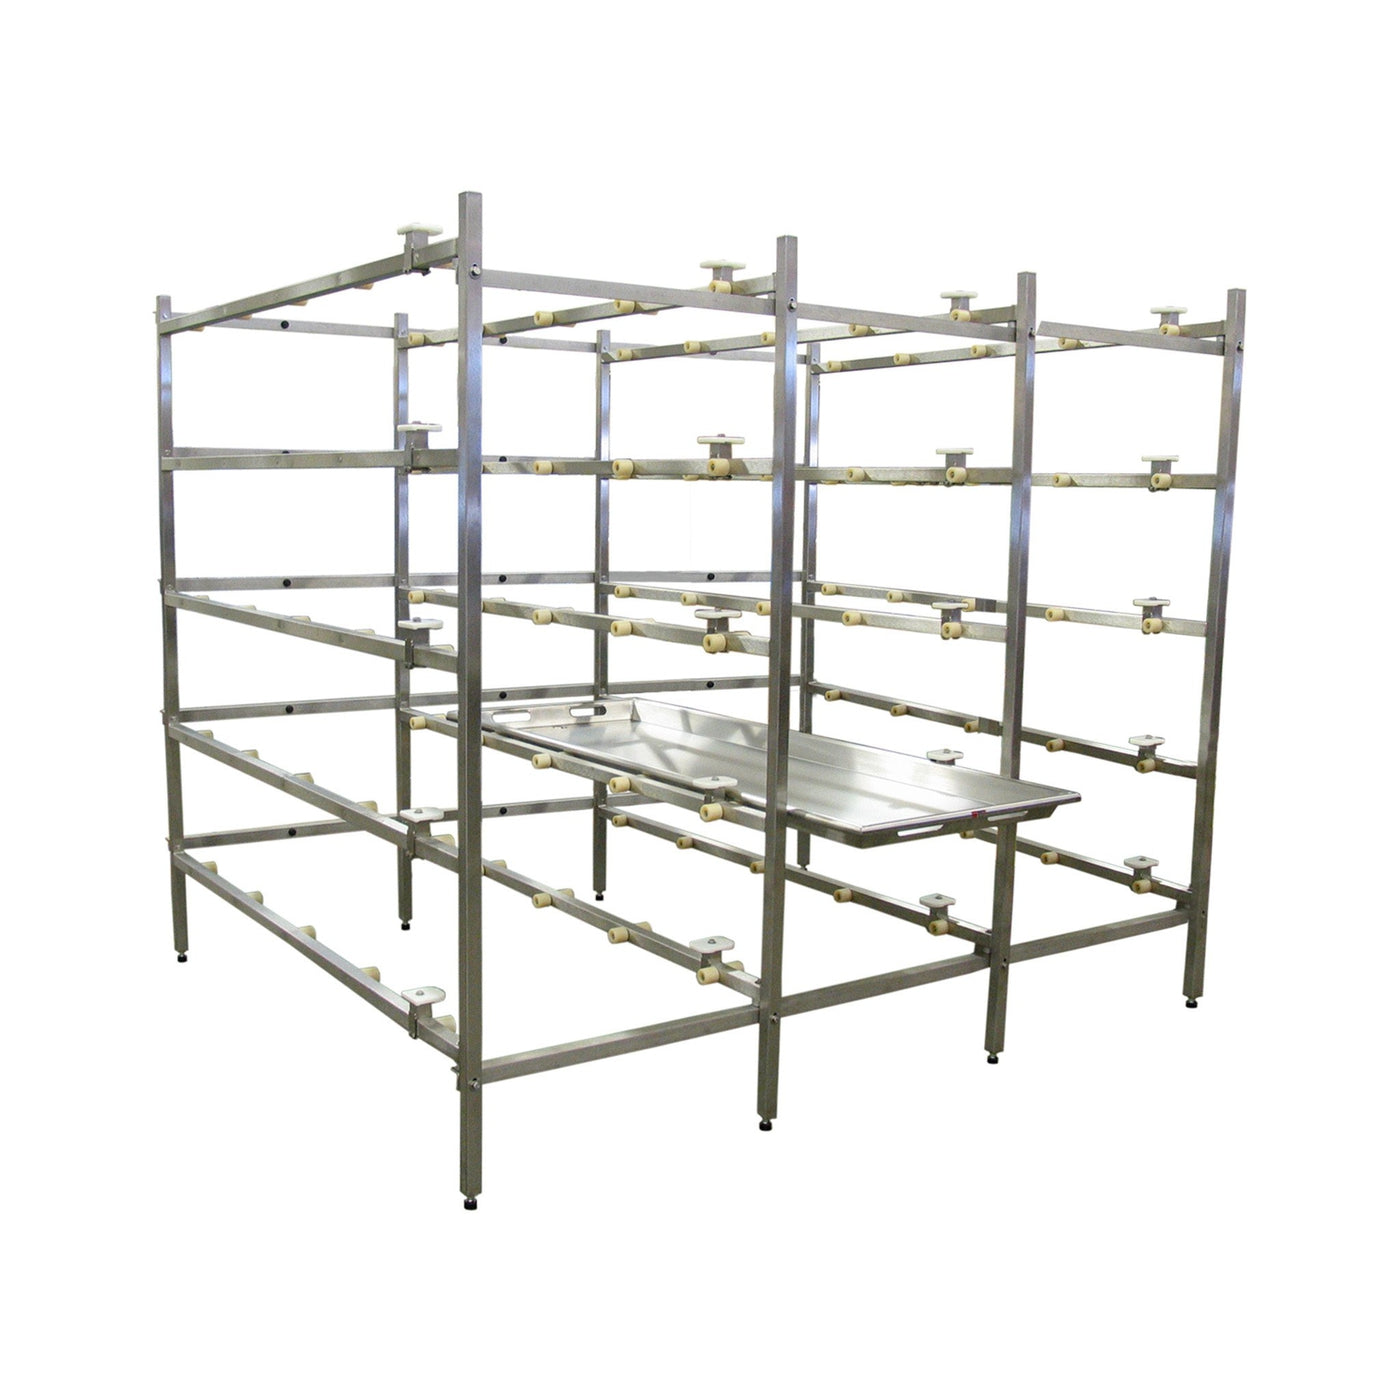 Mortuary Rack System with Rollers-Cadaver Handling & Storage Systems-Mortech Manufacturing Company Inc. Quality Stainless Steel Autopsy, Morgue, Funeral Home, Necropsy, Veterinary / Anatomy, Dissection Equipment and Accessories